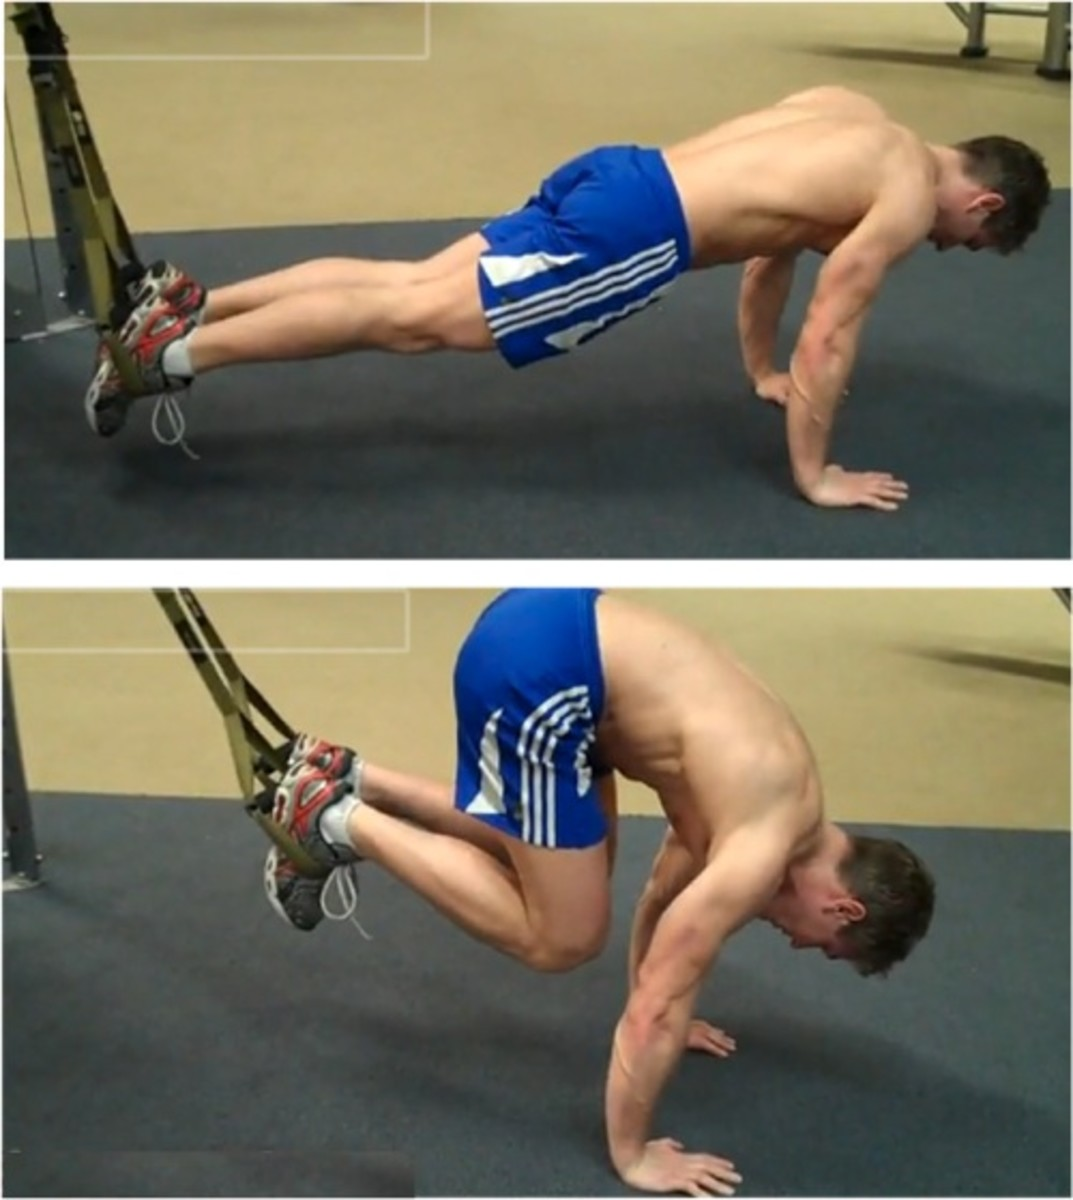 demonstration of the suspended abdominal crunch using the TRX with bare chested male in blue workout shorts showcasing starting movement split screen with the second movement